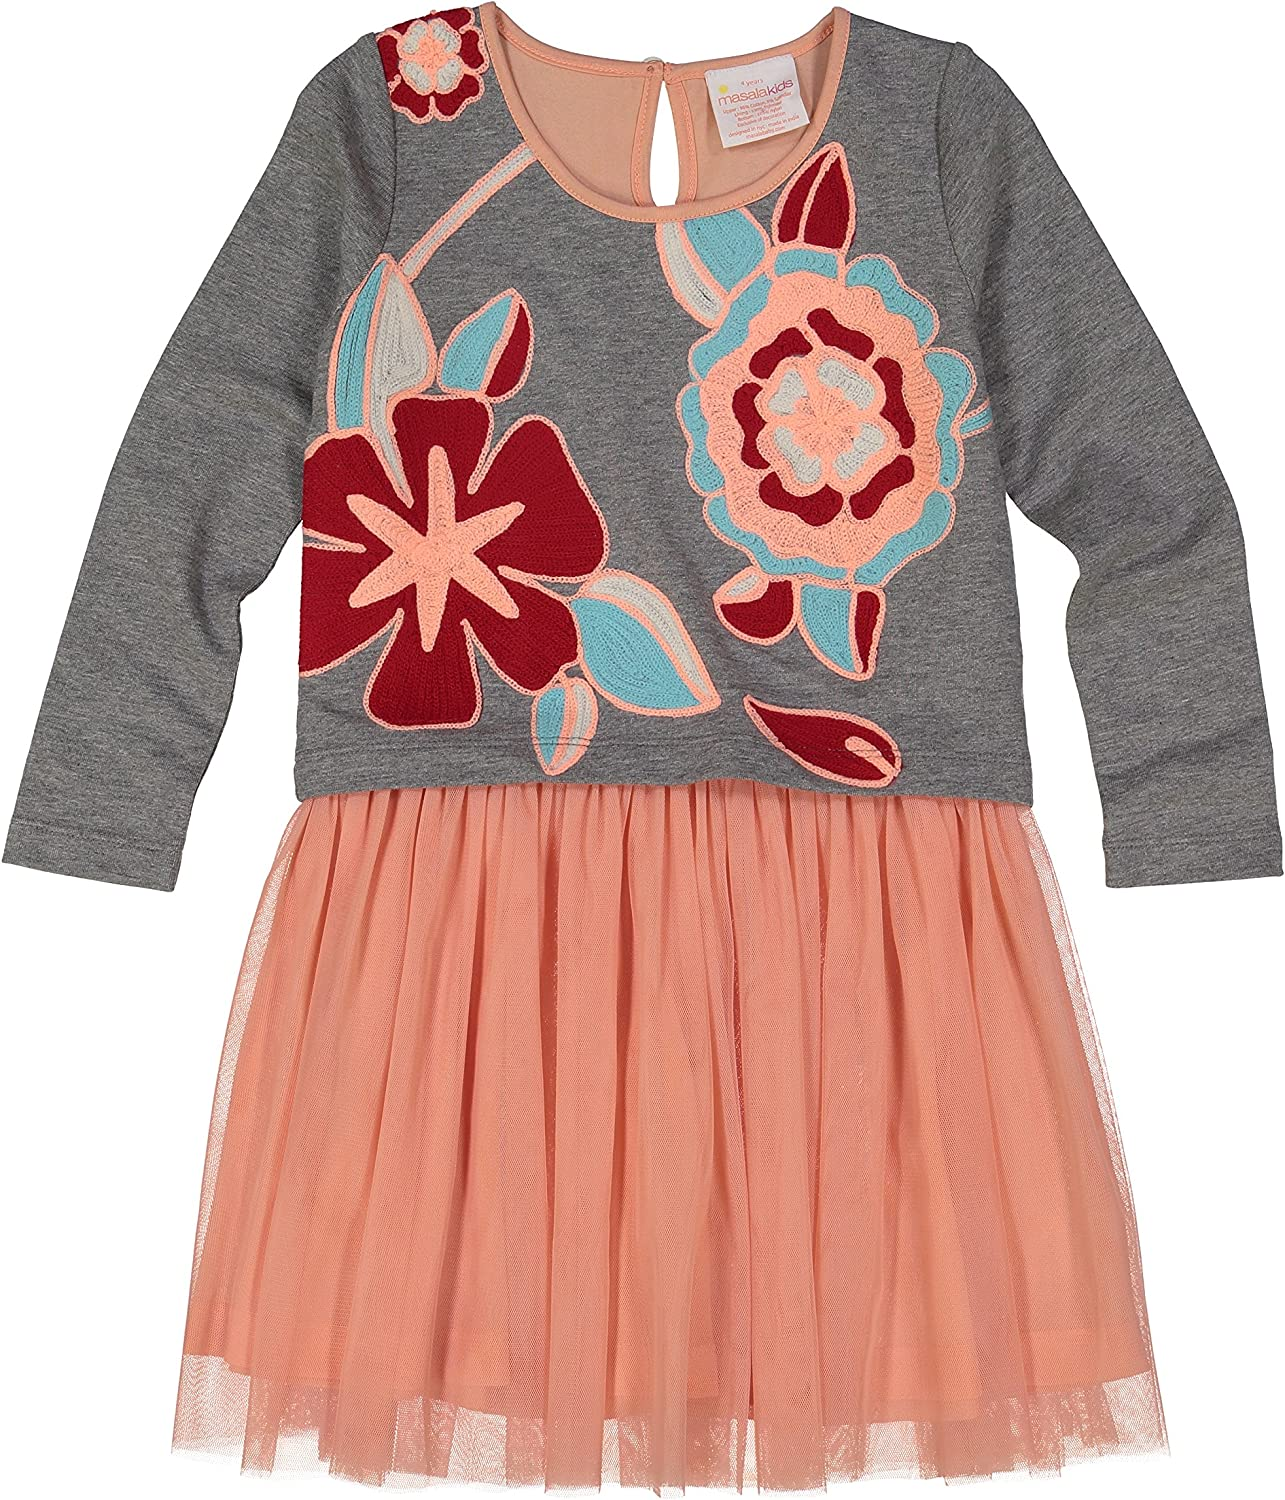 Masala Kids Girls' Little New Free Shipping Charming Fixed price for sale Heather Grey Floral Dress